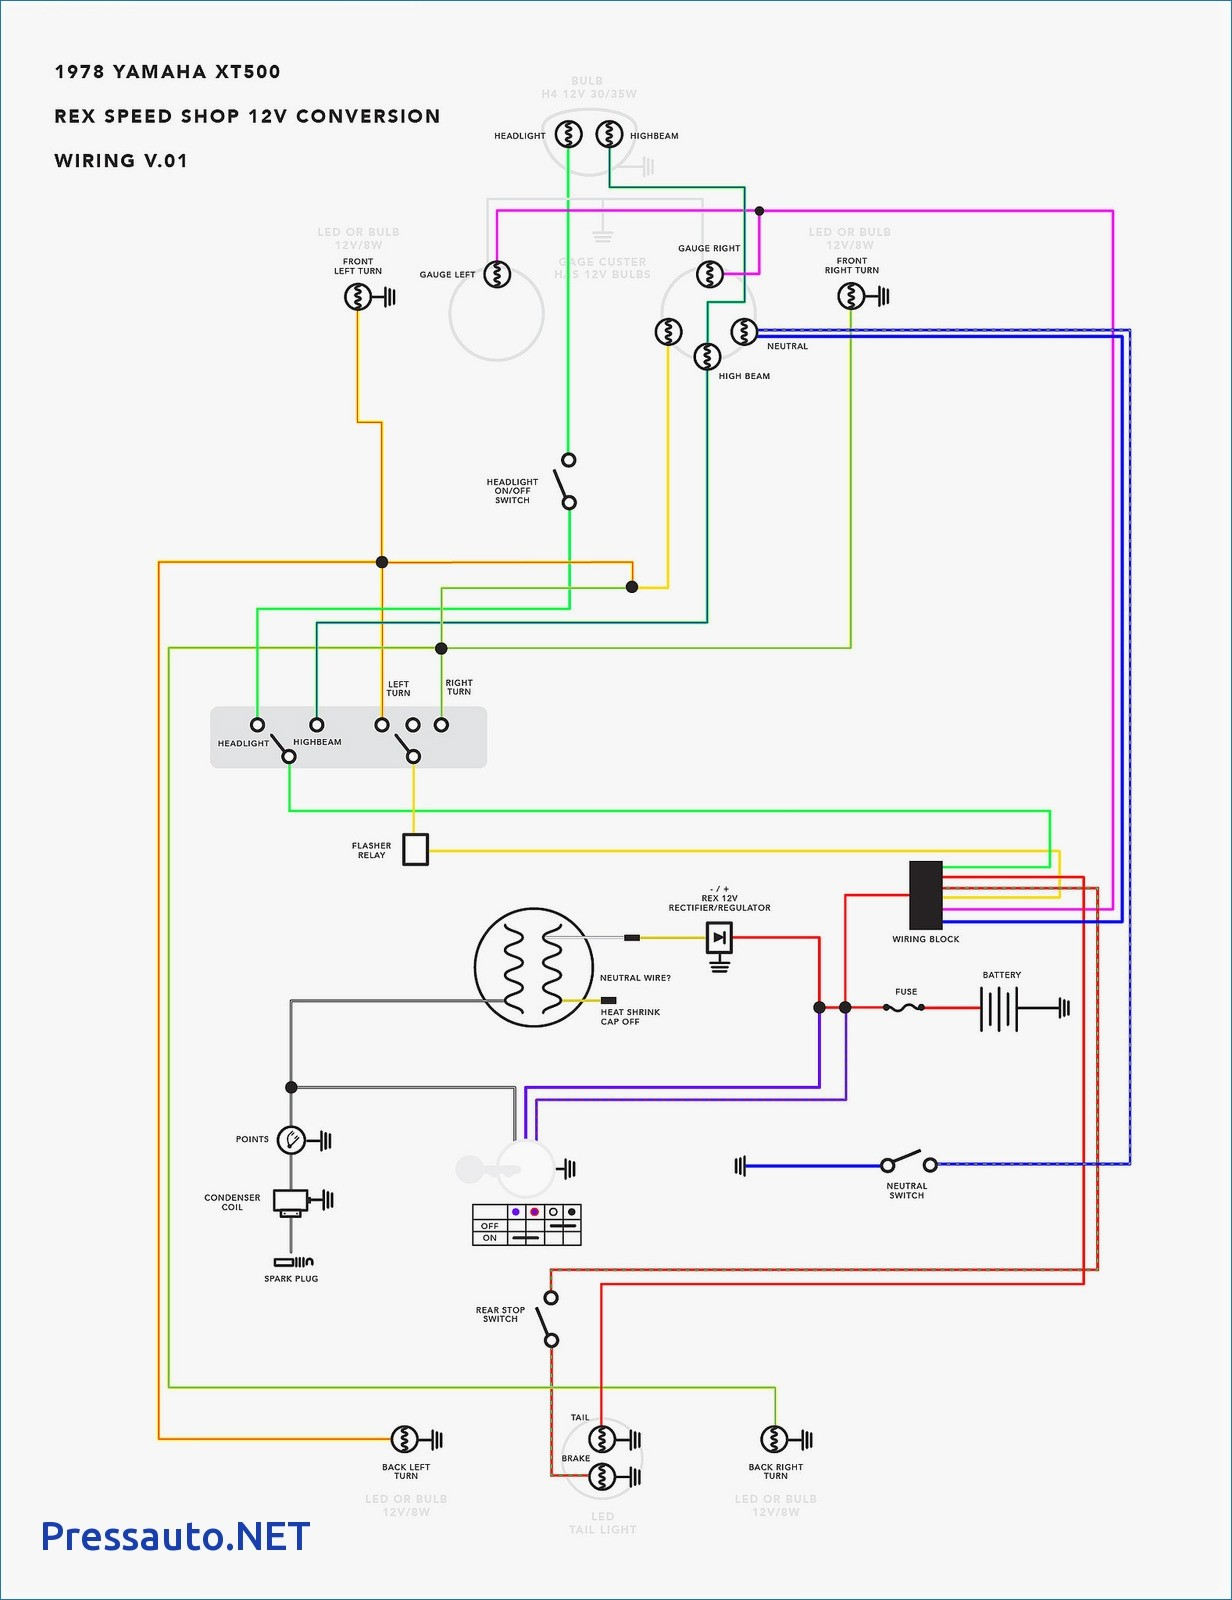 Farmall A Wiring Diagram Pocket Bike Harness Get Free Image H4 Bulb About H Generator 12v Tractor Volt Diagnoses Of